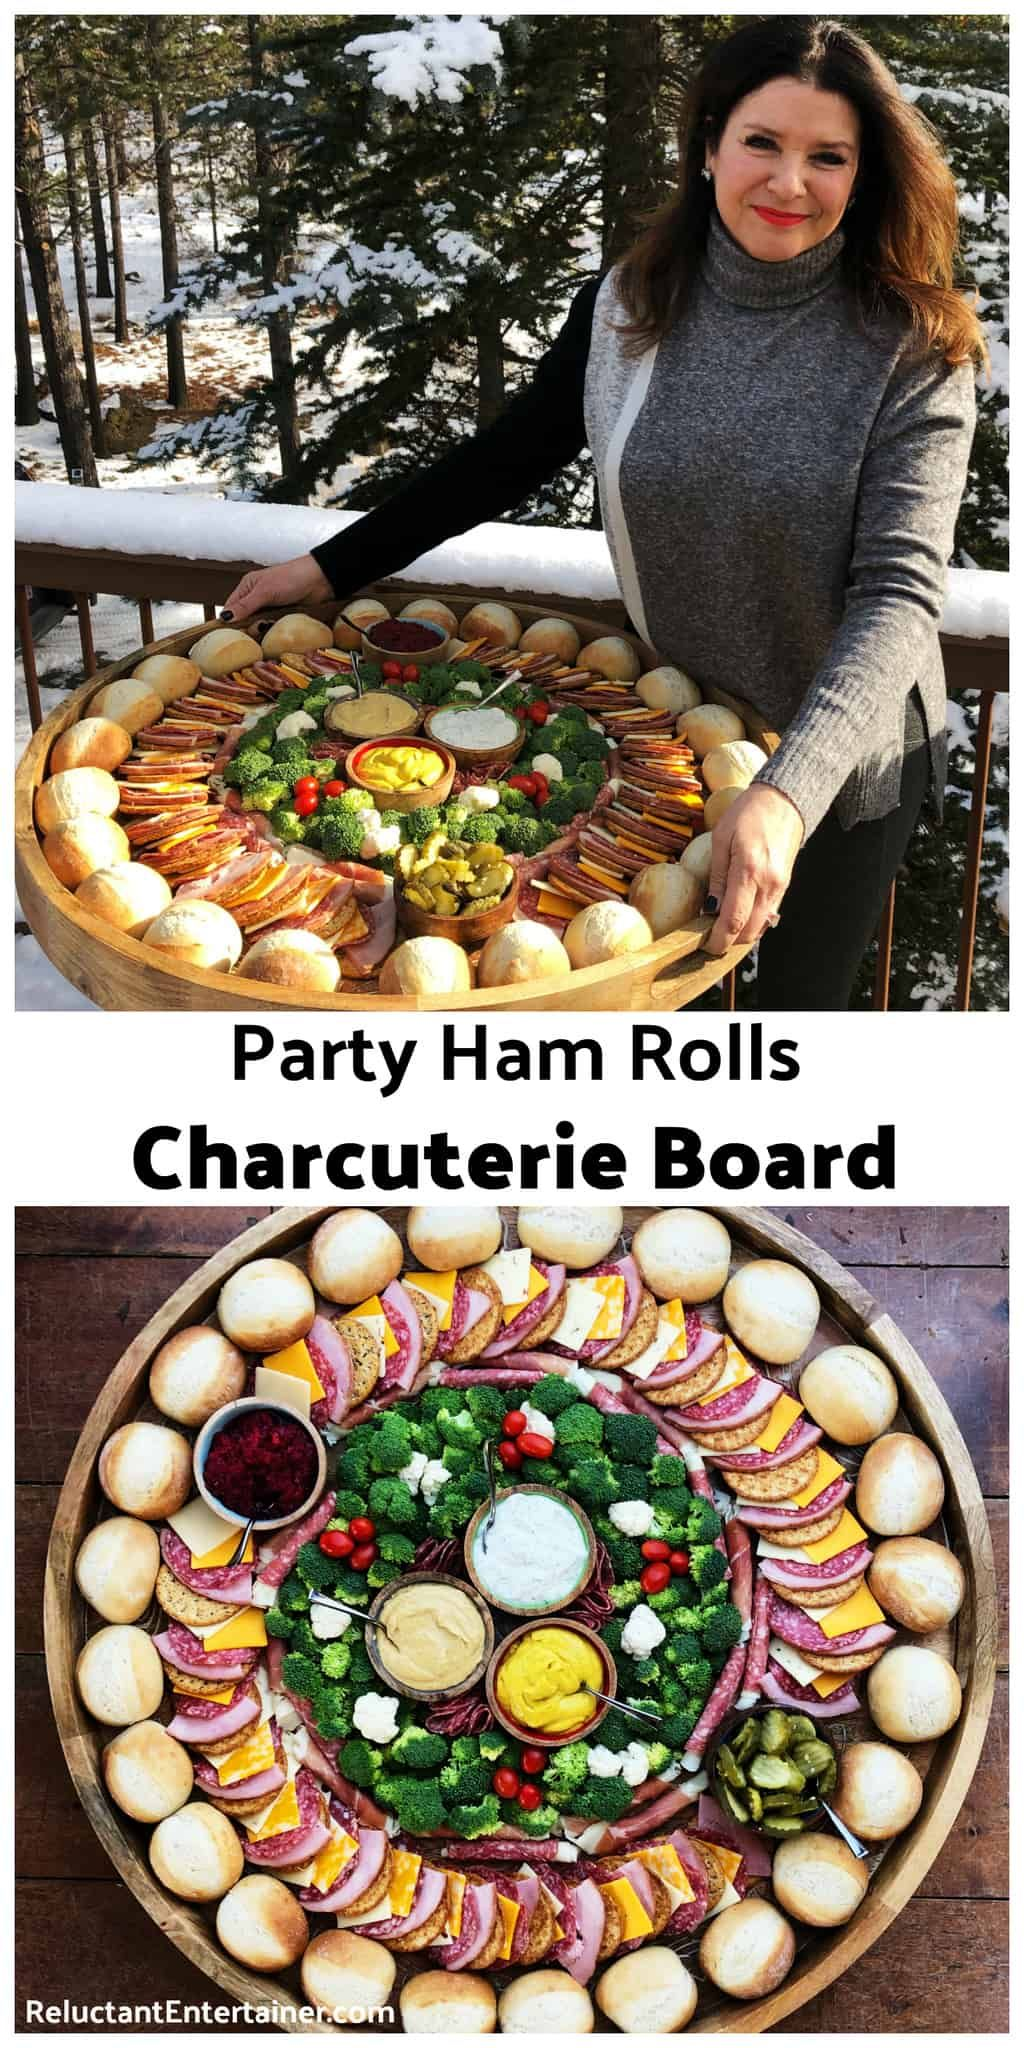 Party Ham Rolls Charcuterie Board is a favorite dinner board for a large gathering. Layer your favorite cheese, ham, salami, and pickles on a French roll #partyhamrolls #hamrolls #charcuterieboard via @sandycoughlin #charcuterieboard